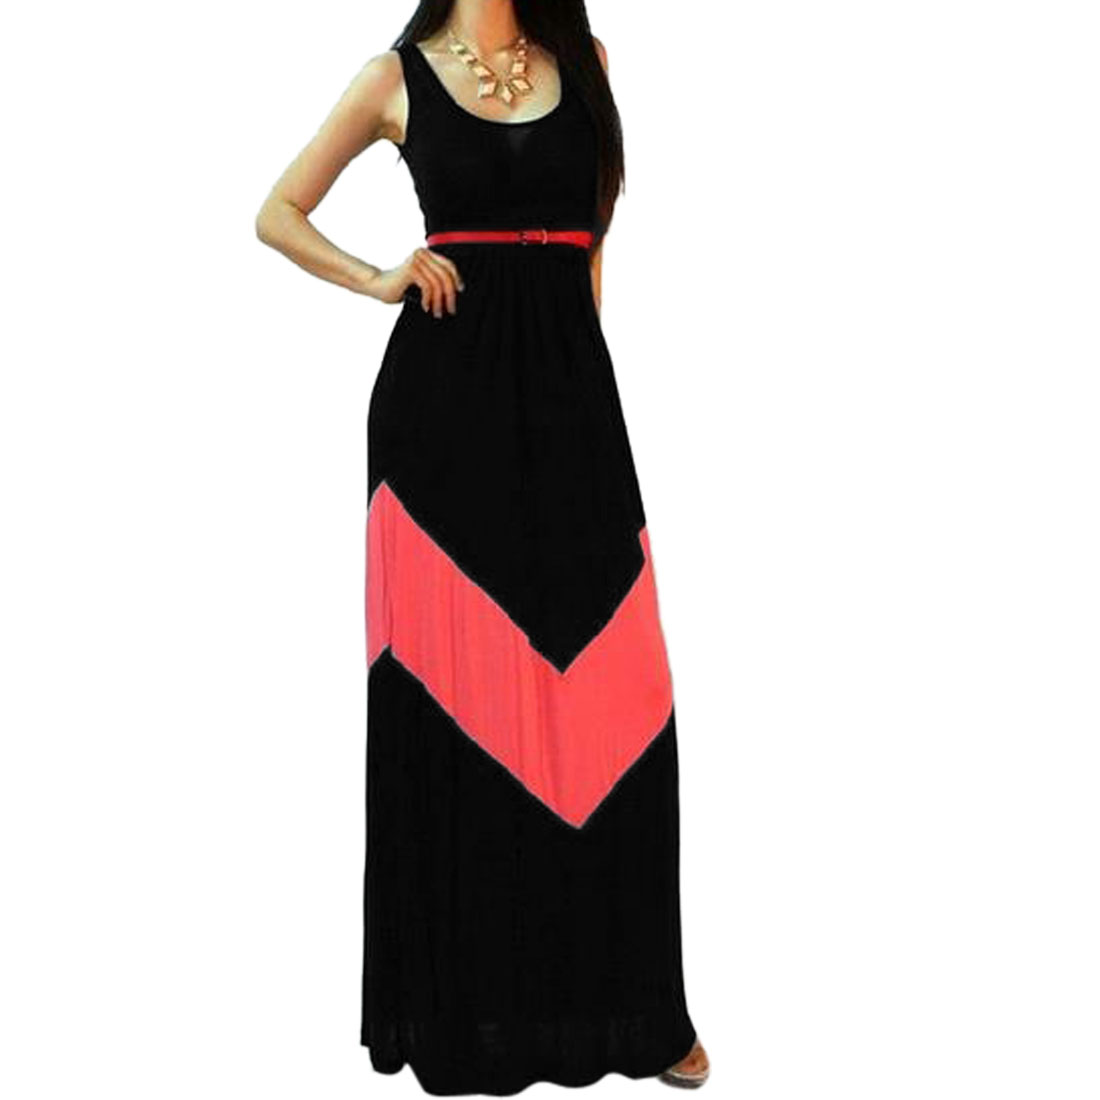 Women\'s Scoop Neck Waist Tie Maxi Dress with Side Slits